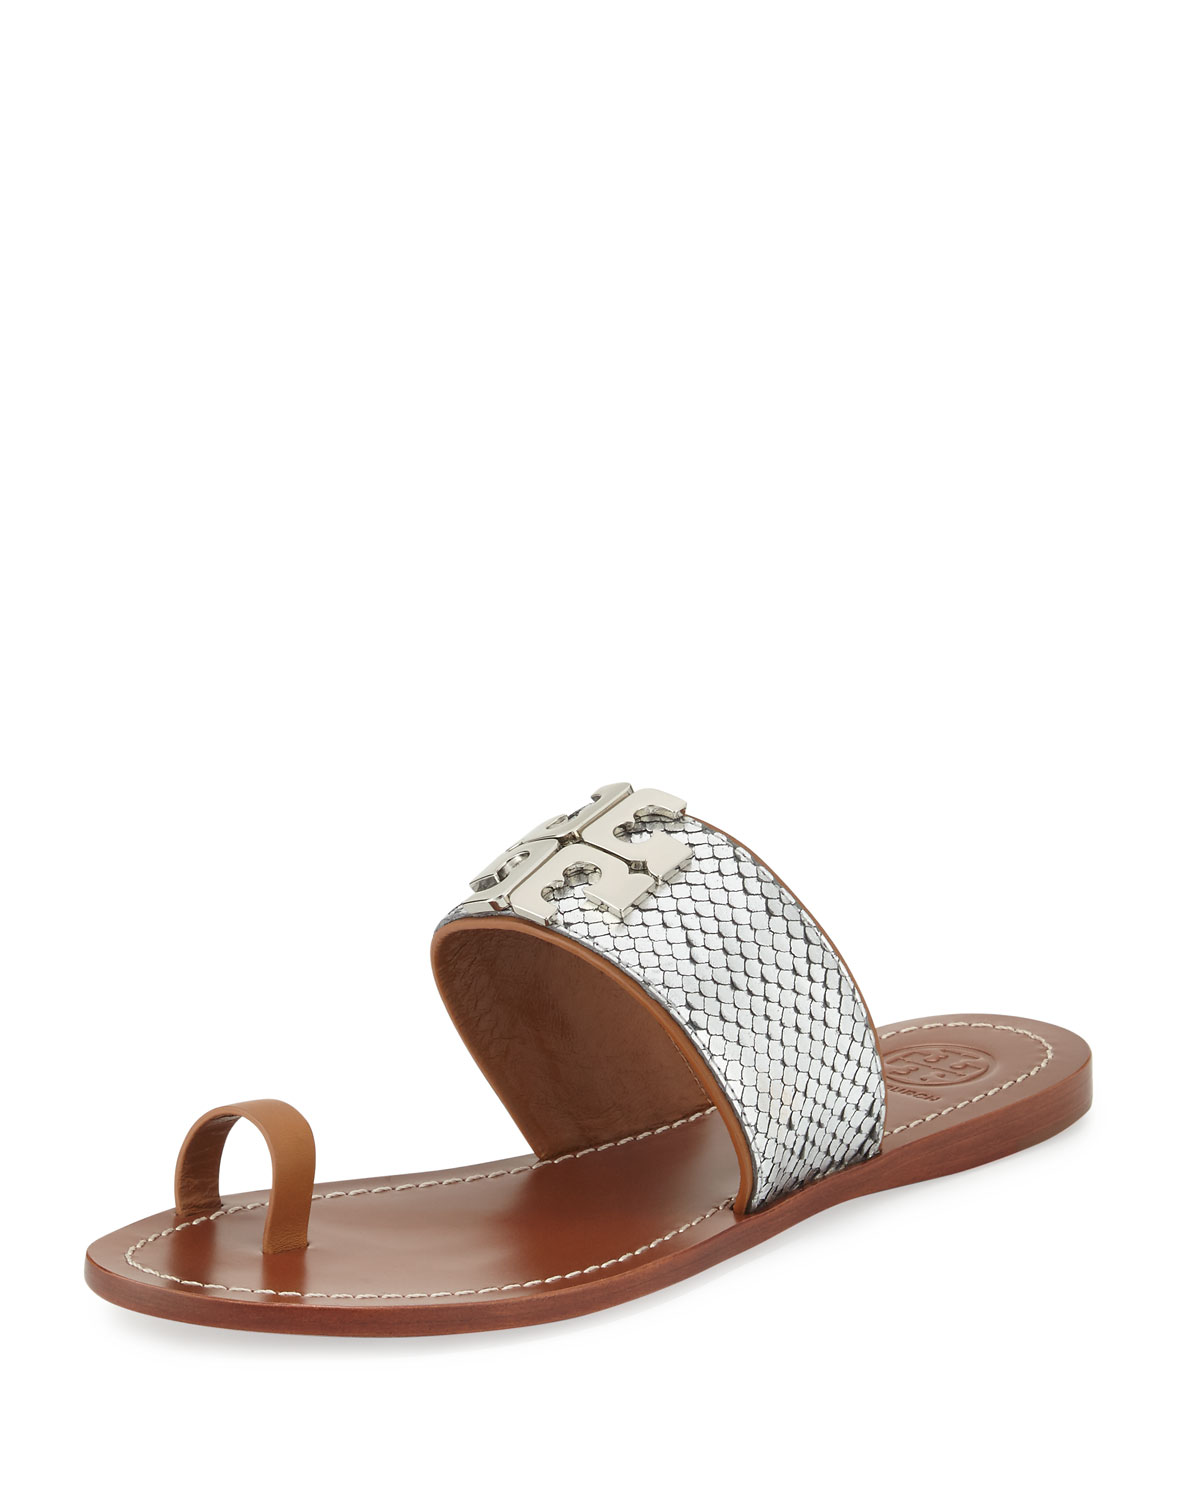 77b950750 Tory Burch Lowell 2 Snake-Embossed Toe-Ring Sandal